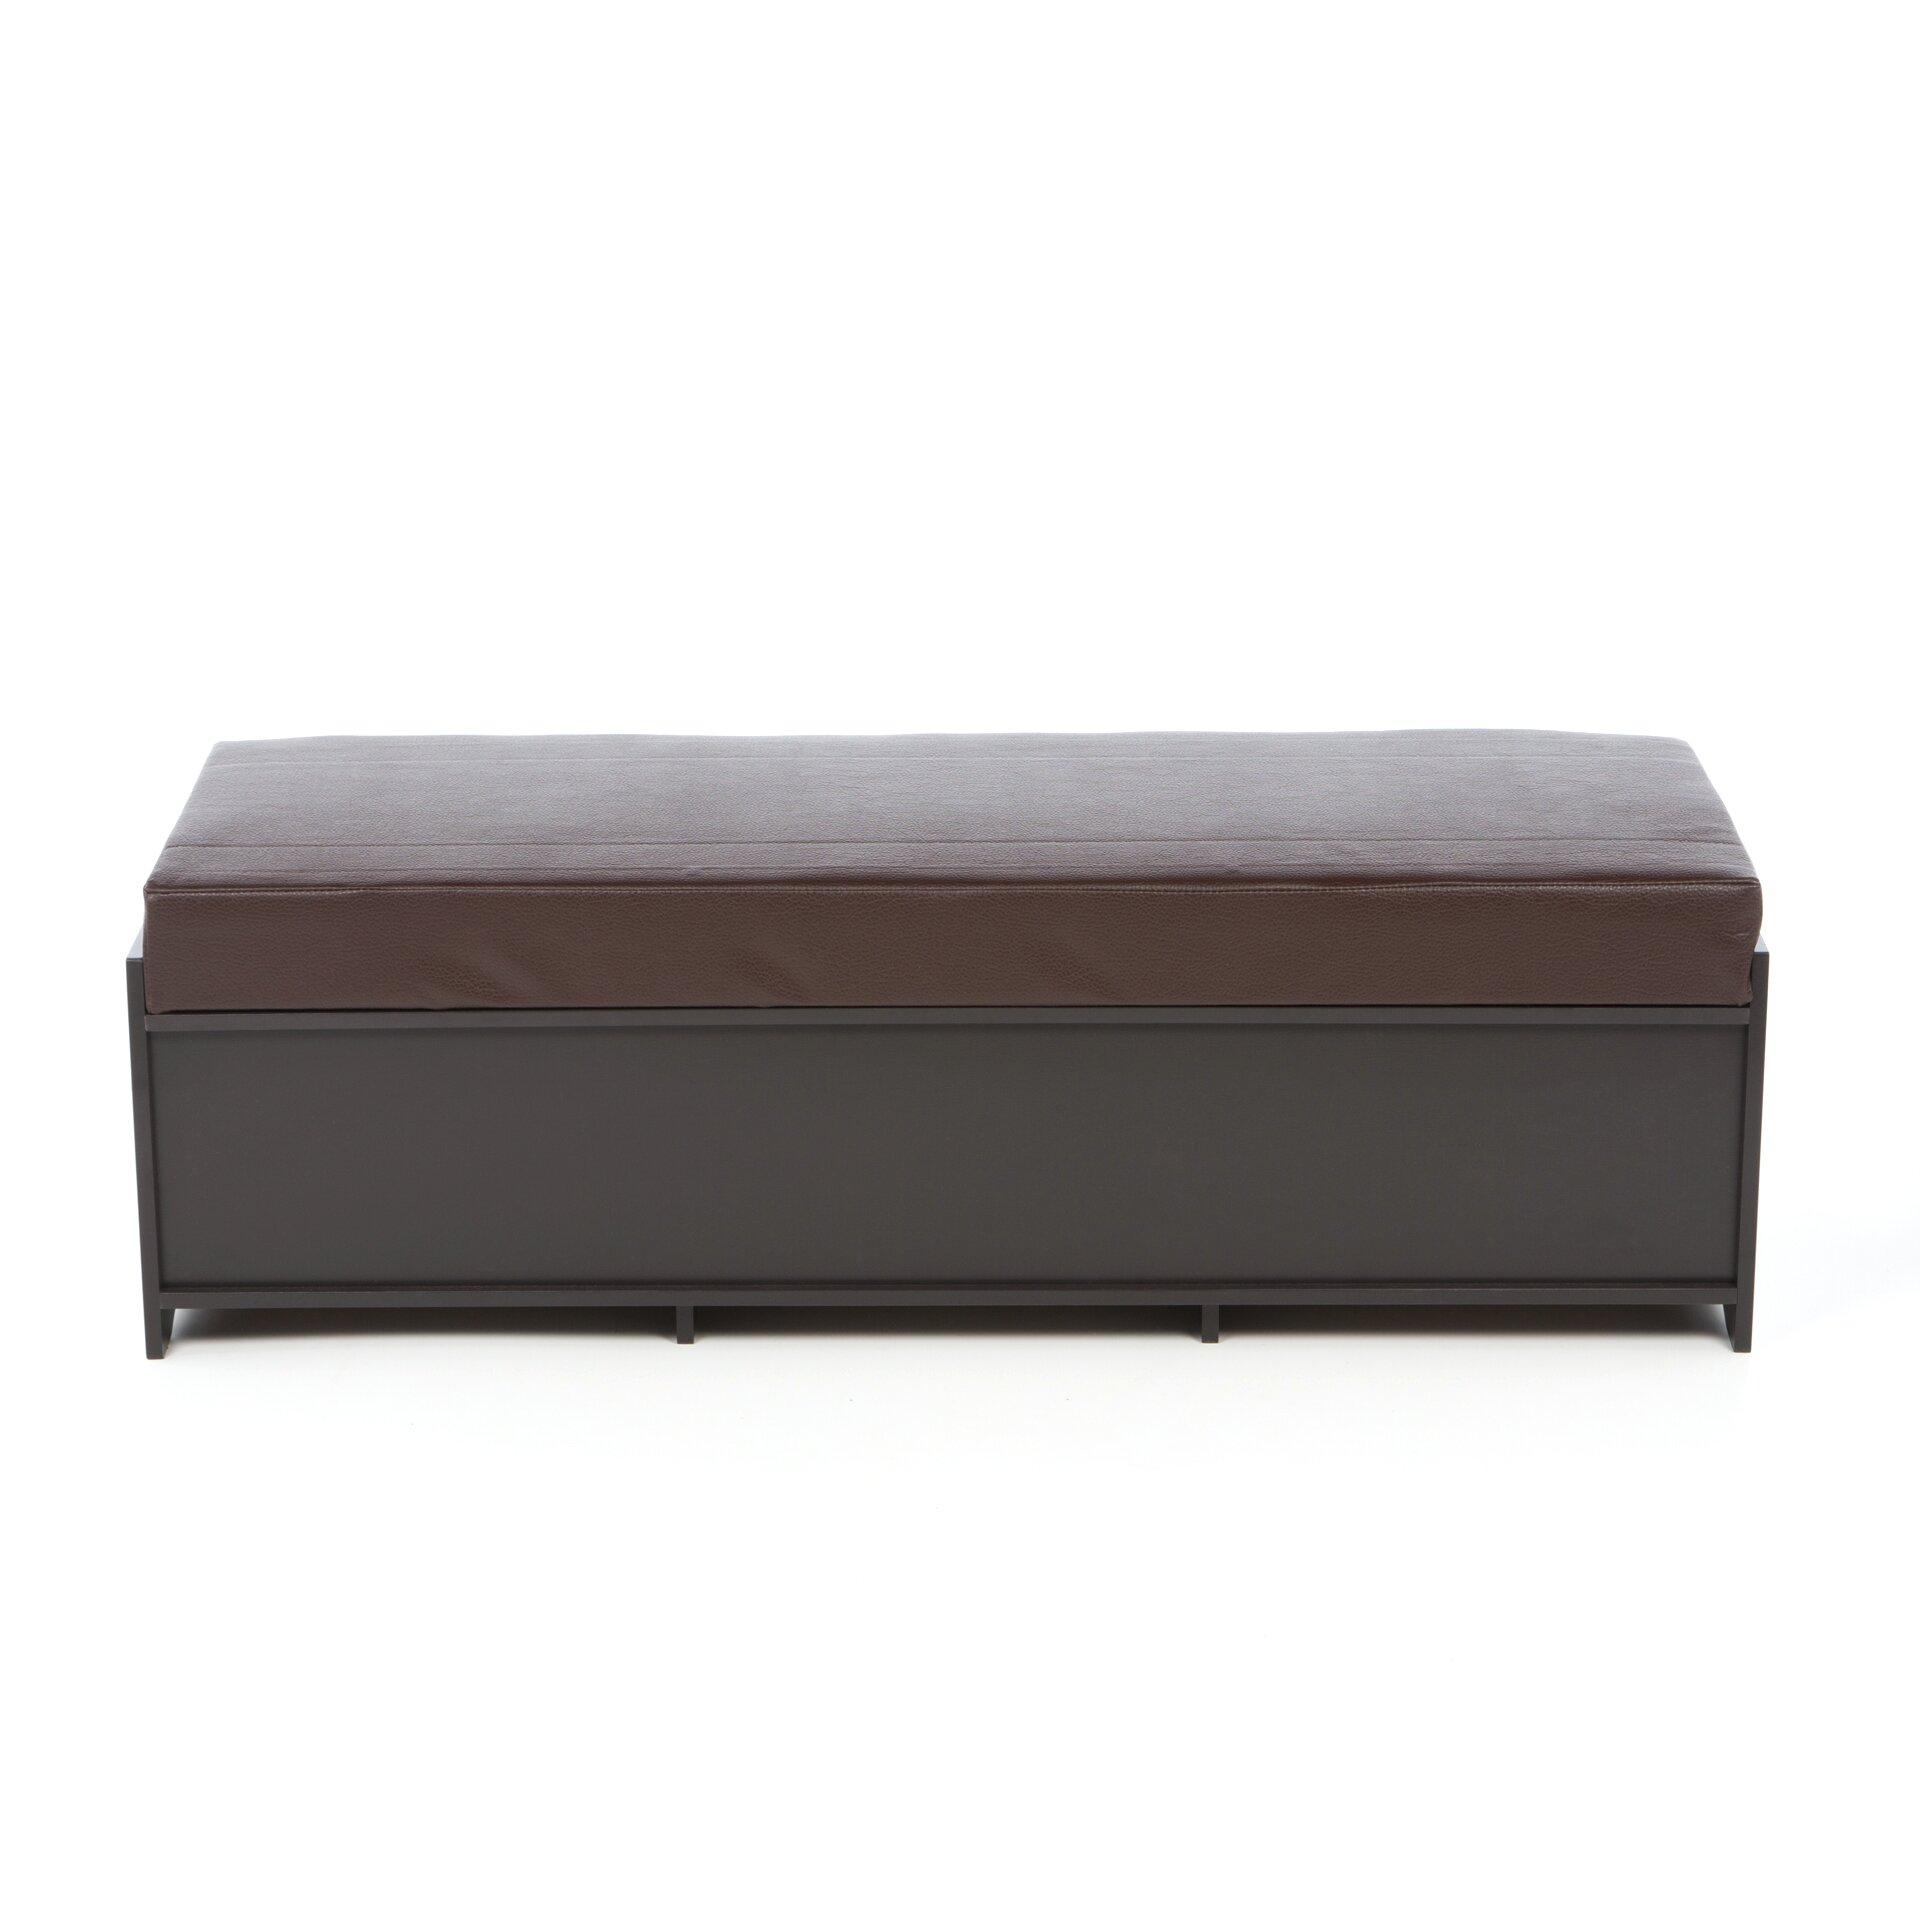 Badger basket kid 39 s storage bench with cushion and three bins in espresso with espresso Storage bench cushion